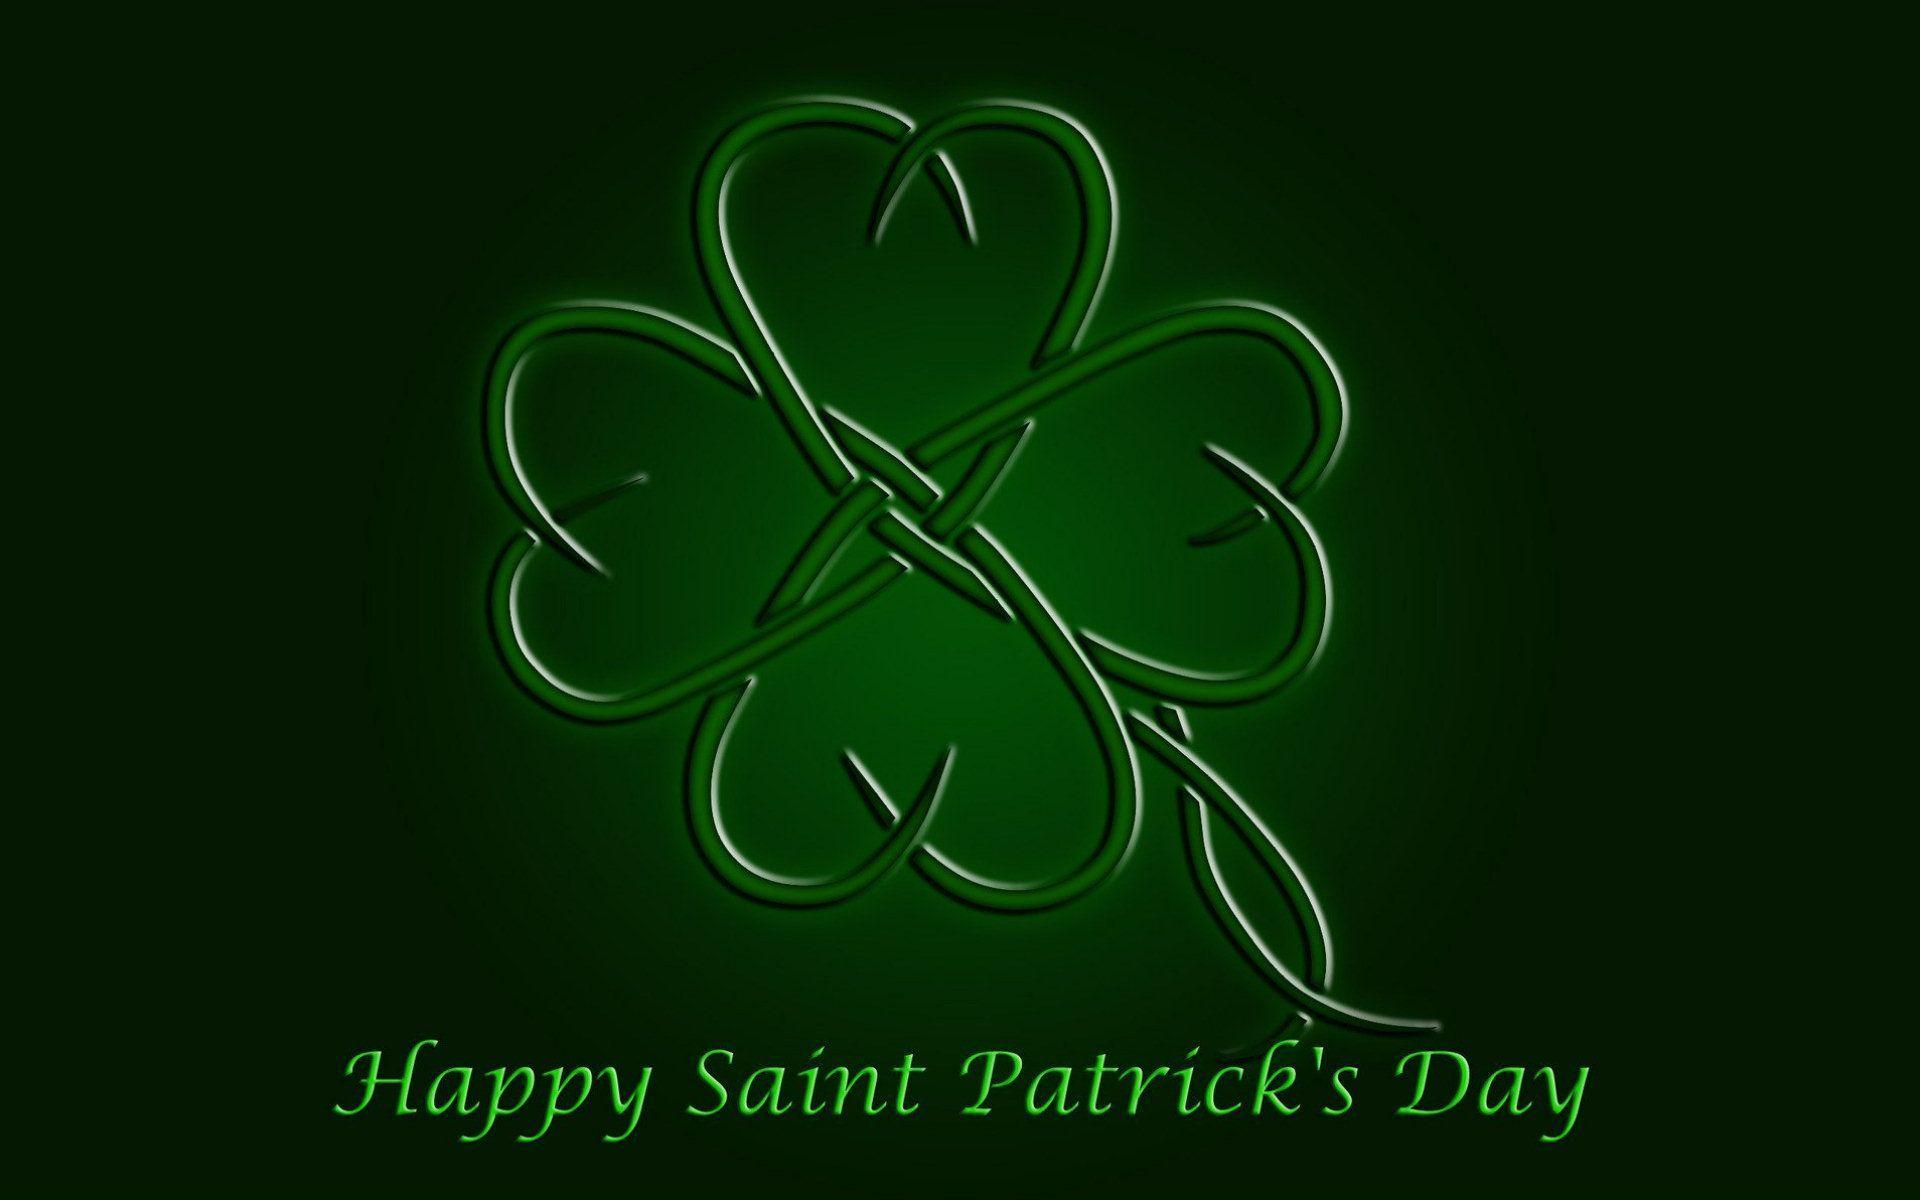 19 St. Patrick's Day Wallpapers | St. Patrick's Day Backgrounds